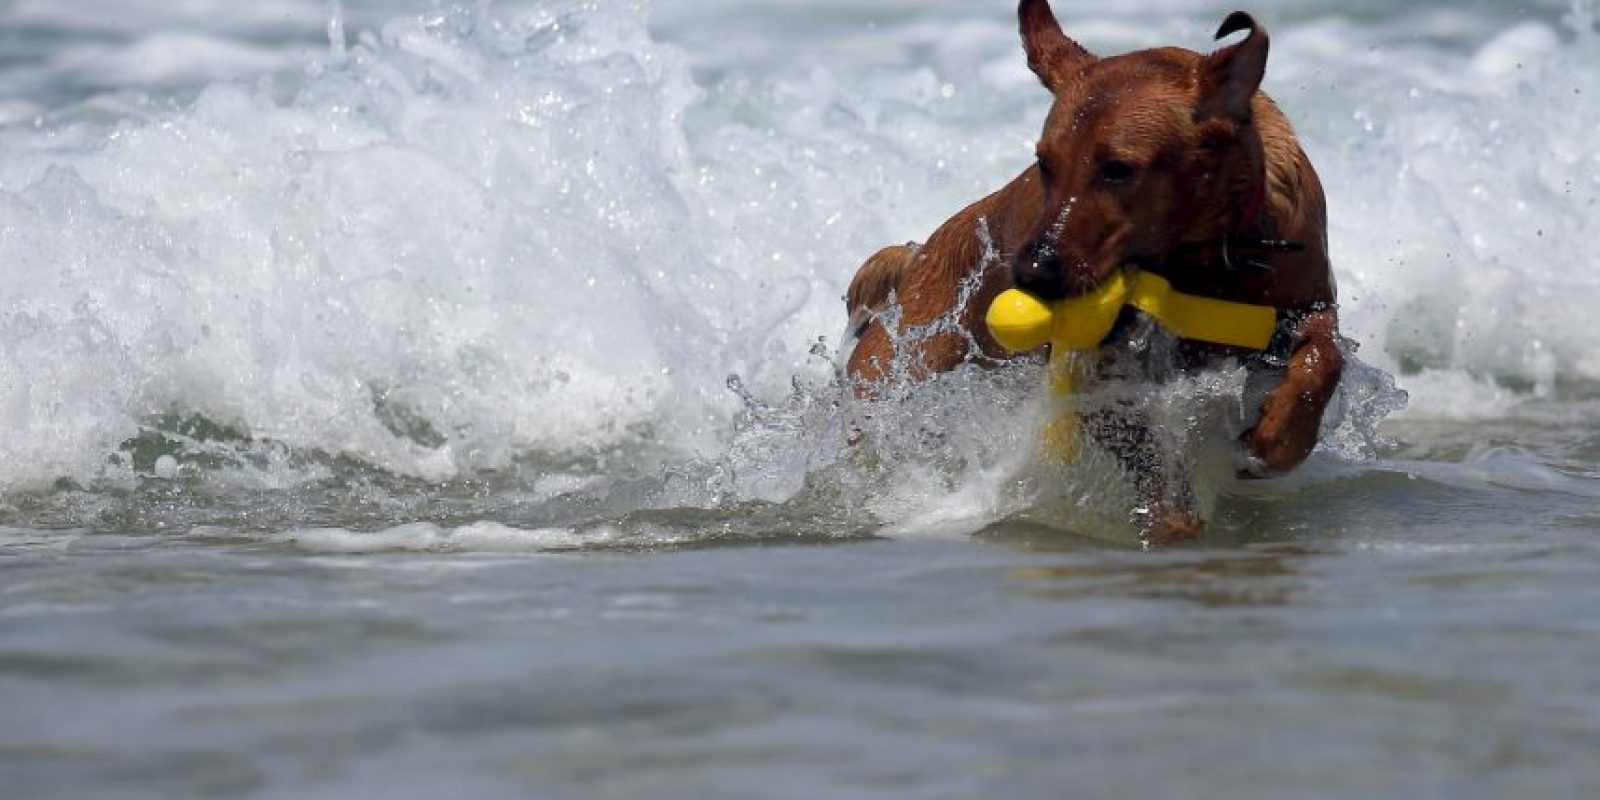 Jugando en la playa Foto: Getty Images